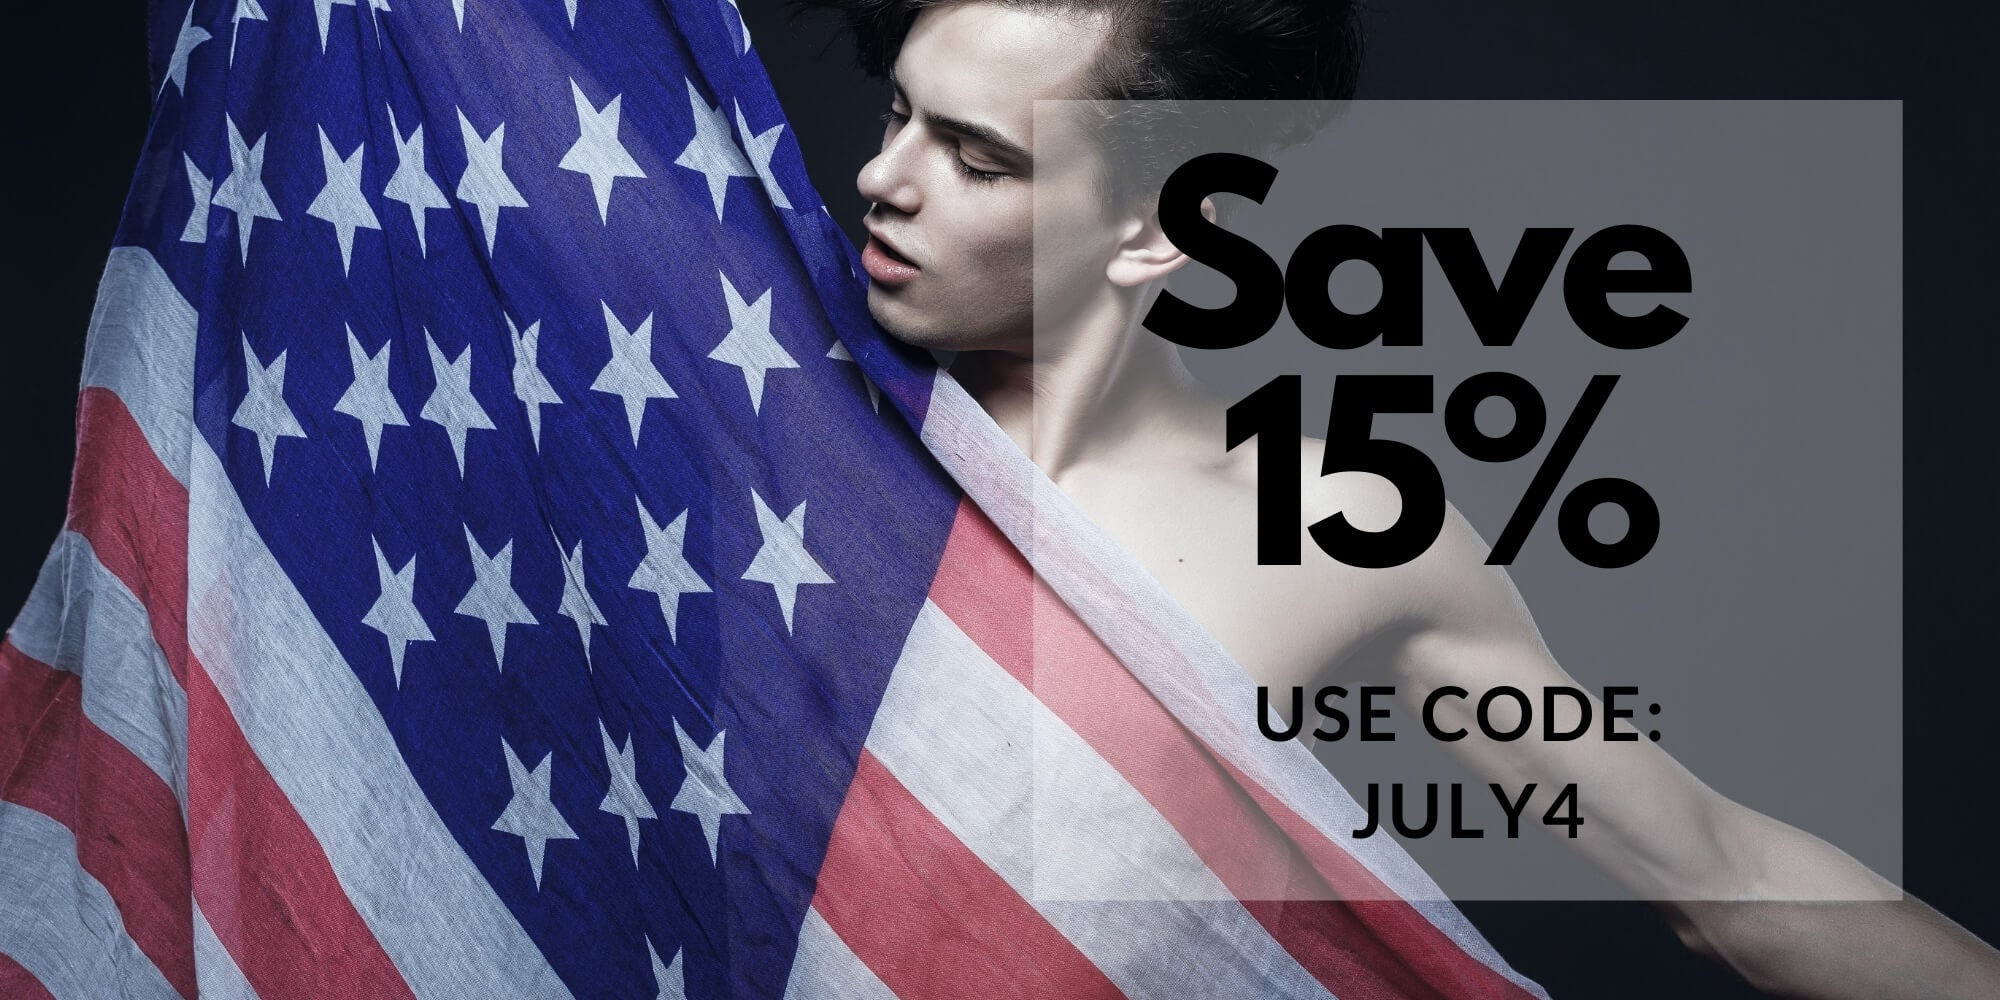 gay sex toy sale - 4th July